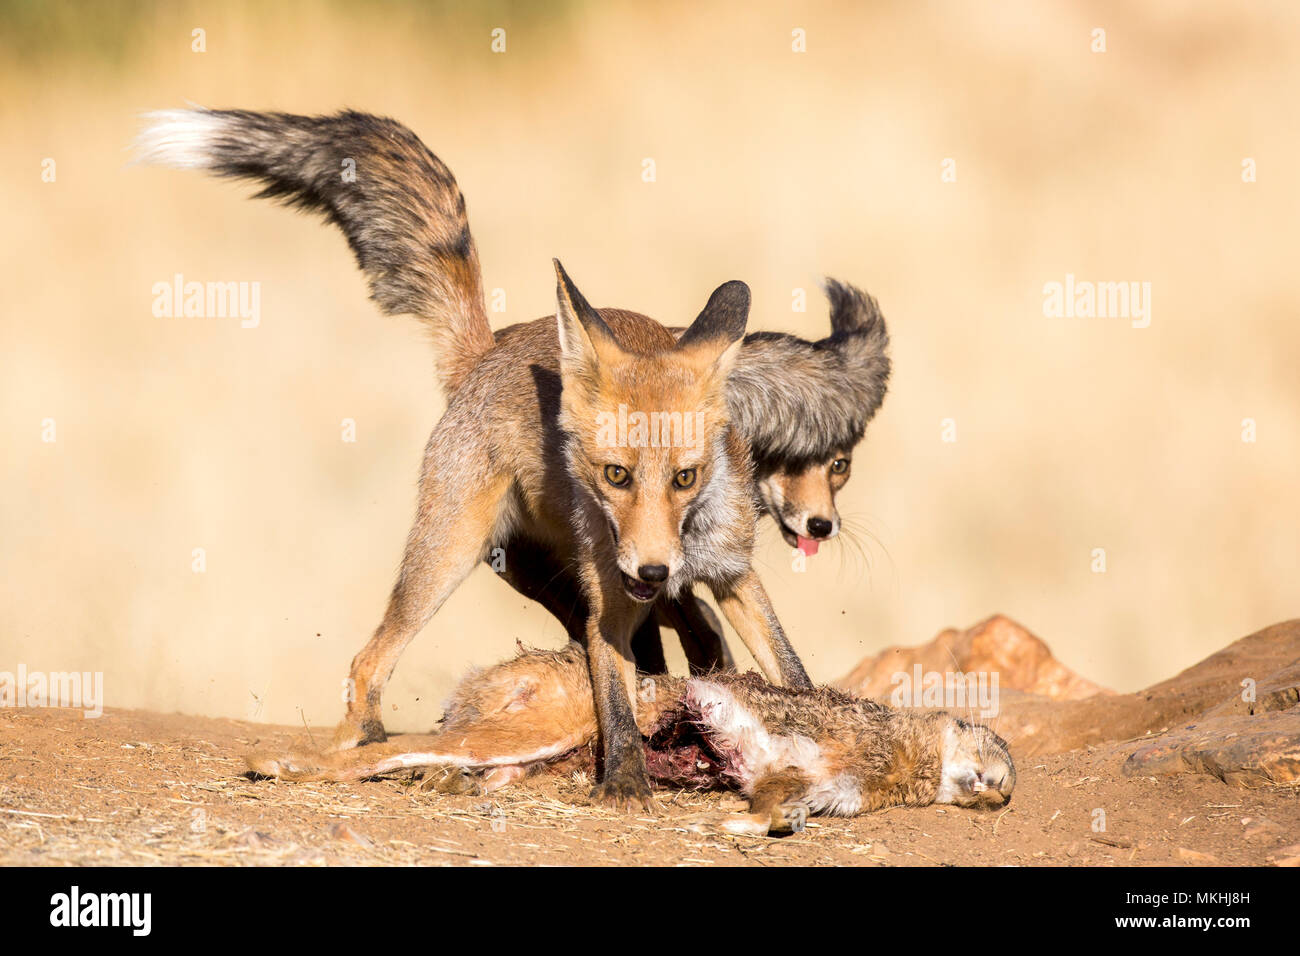 Red fox (Vulpes vulpes) fighting for a prey, Ciudad real, Spain - Stock Image